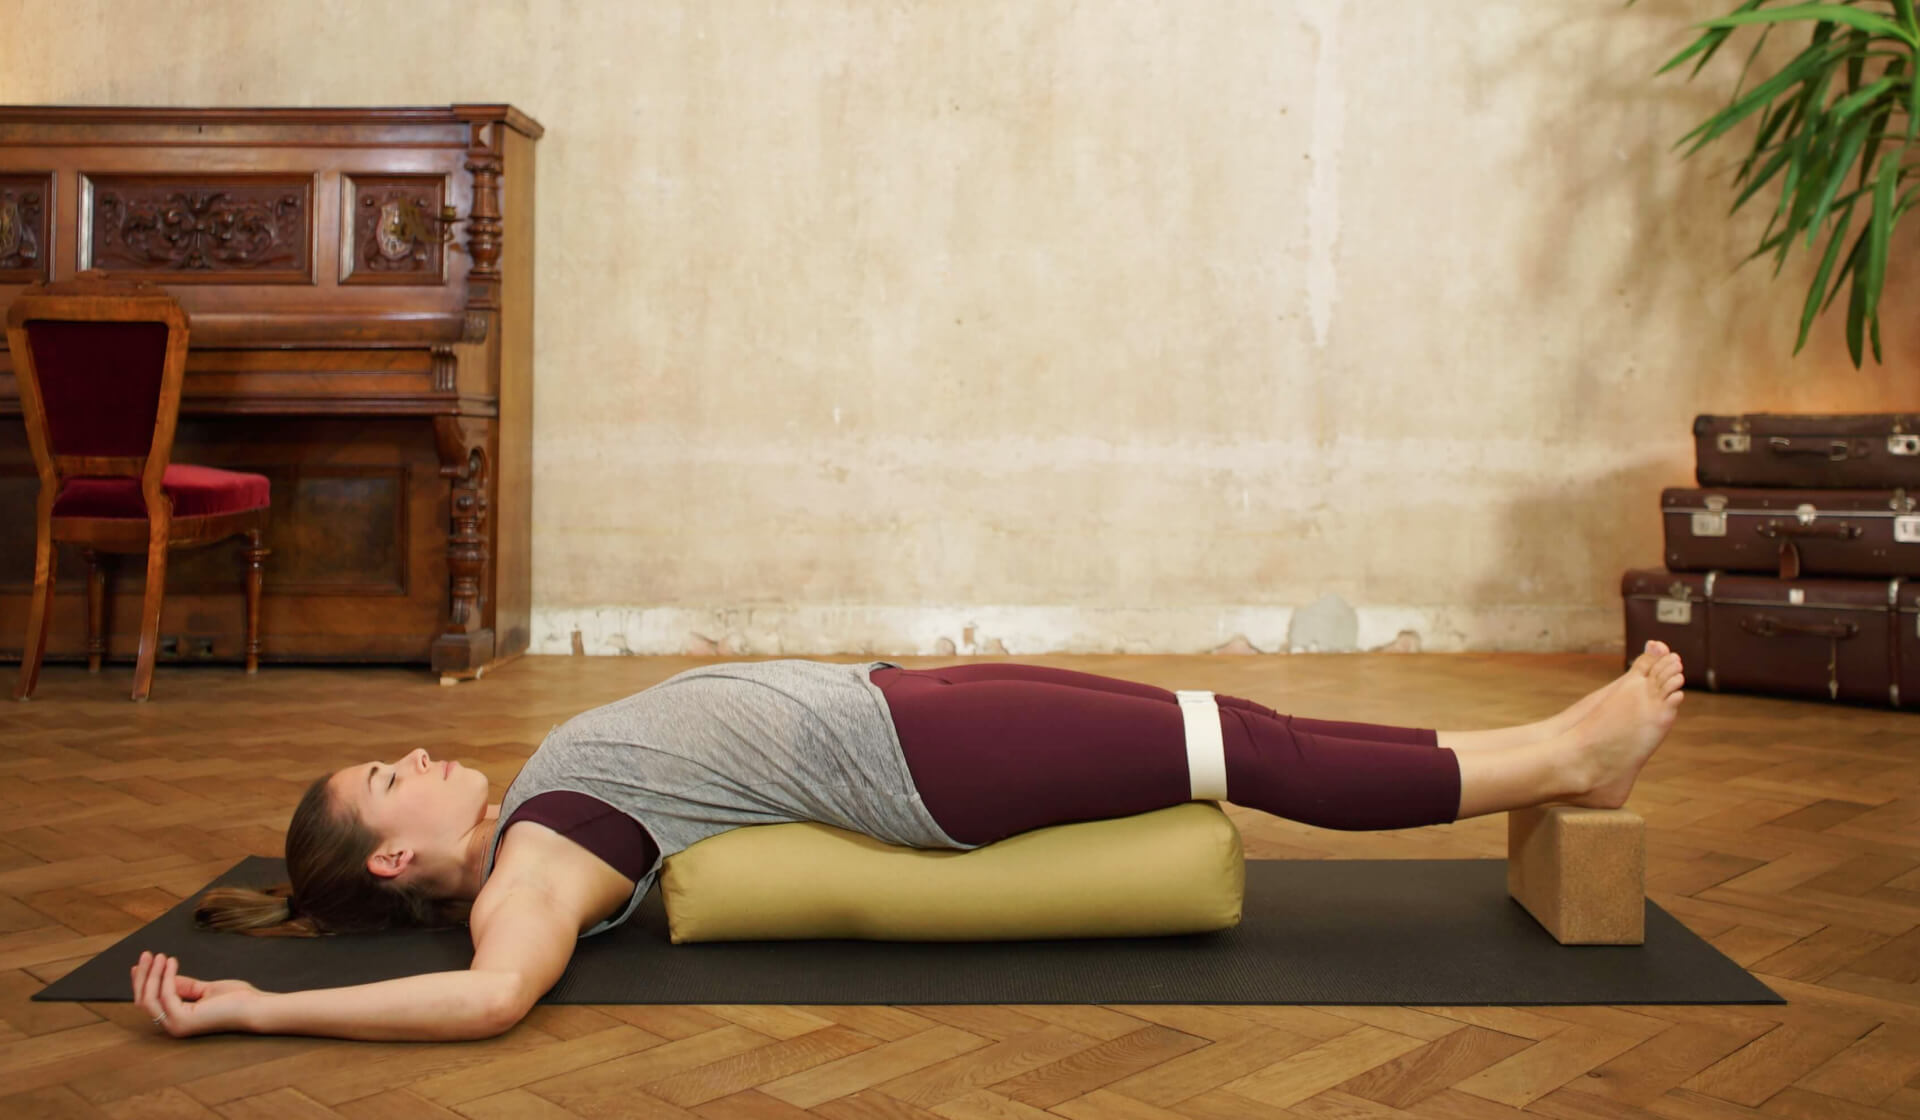 Yoga teacher relaxing in a restorative yoga pose, laying over a biege bolster and blocks in front of a piano